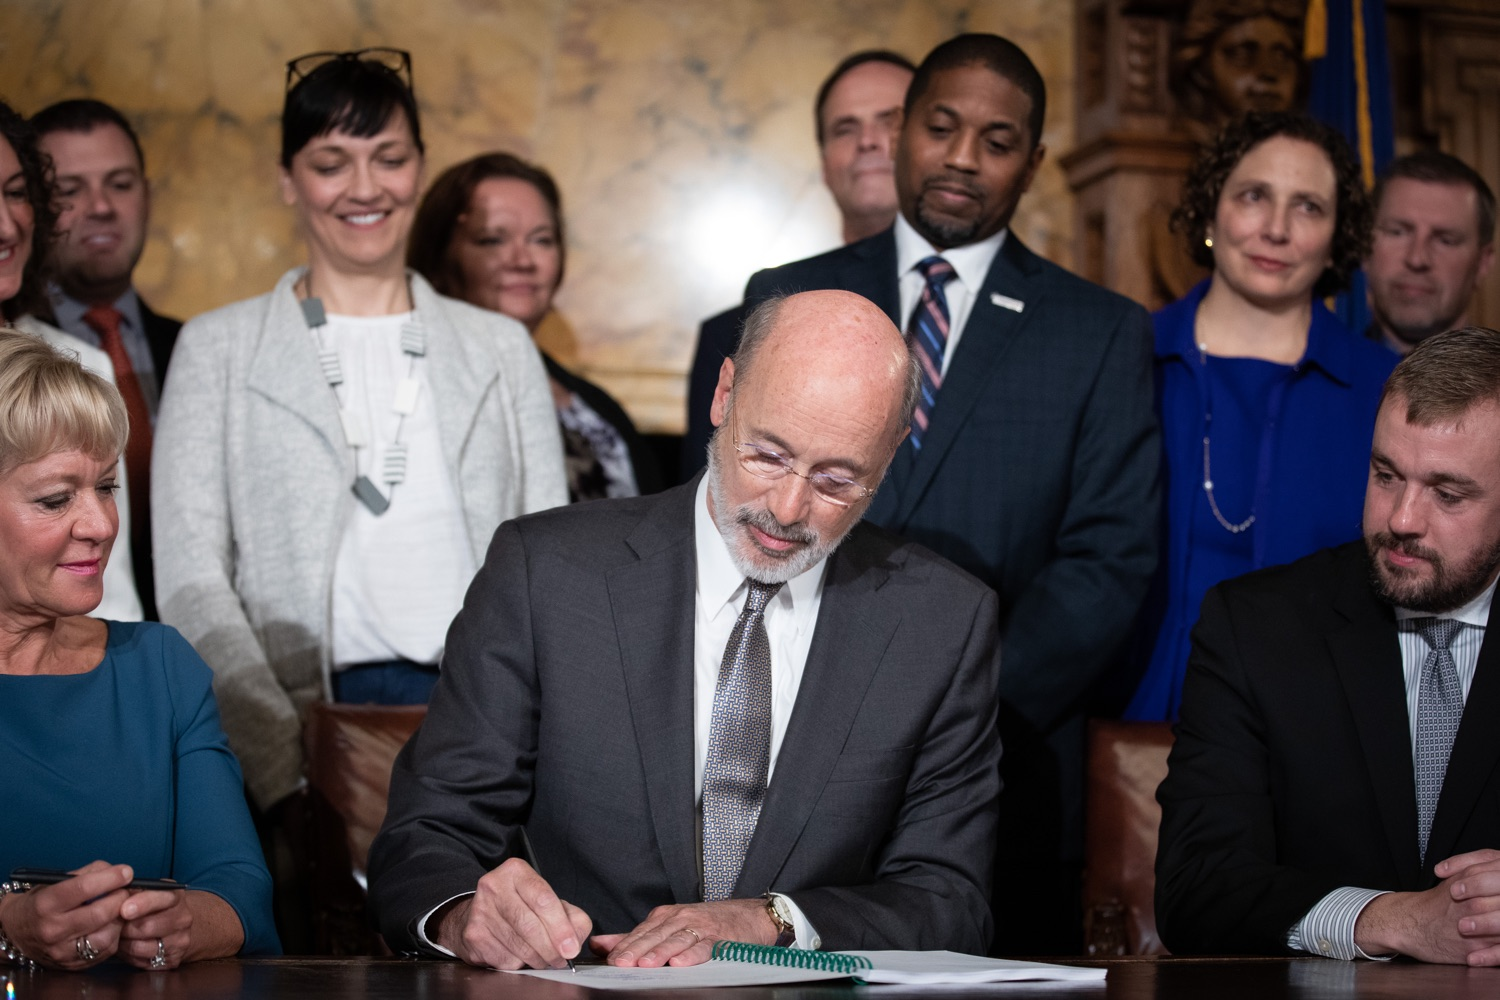 "<a href=""http://filesource.abacast.com/commonwealthofpa/photo/17554_gov_voter_reform_bill_dz_004.jpg"" target=""_blank"">⇣ Download Photo<br></a>Harrisburg, PA  Governor Tom Wolf signs the Election Reform Bill. Governor Wolf made voting more convenient and secure by signing Act 77 of 2019, the most significant improvement to Pennsylvanias elections in more than 80 years. The bipartisan compromise legislation takes effect for the April 2020 primary election and makes Pennsylvania a national leader with voter-friendly election reforms."